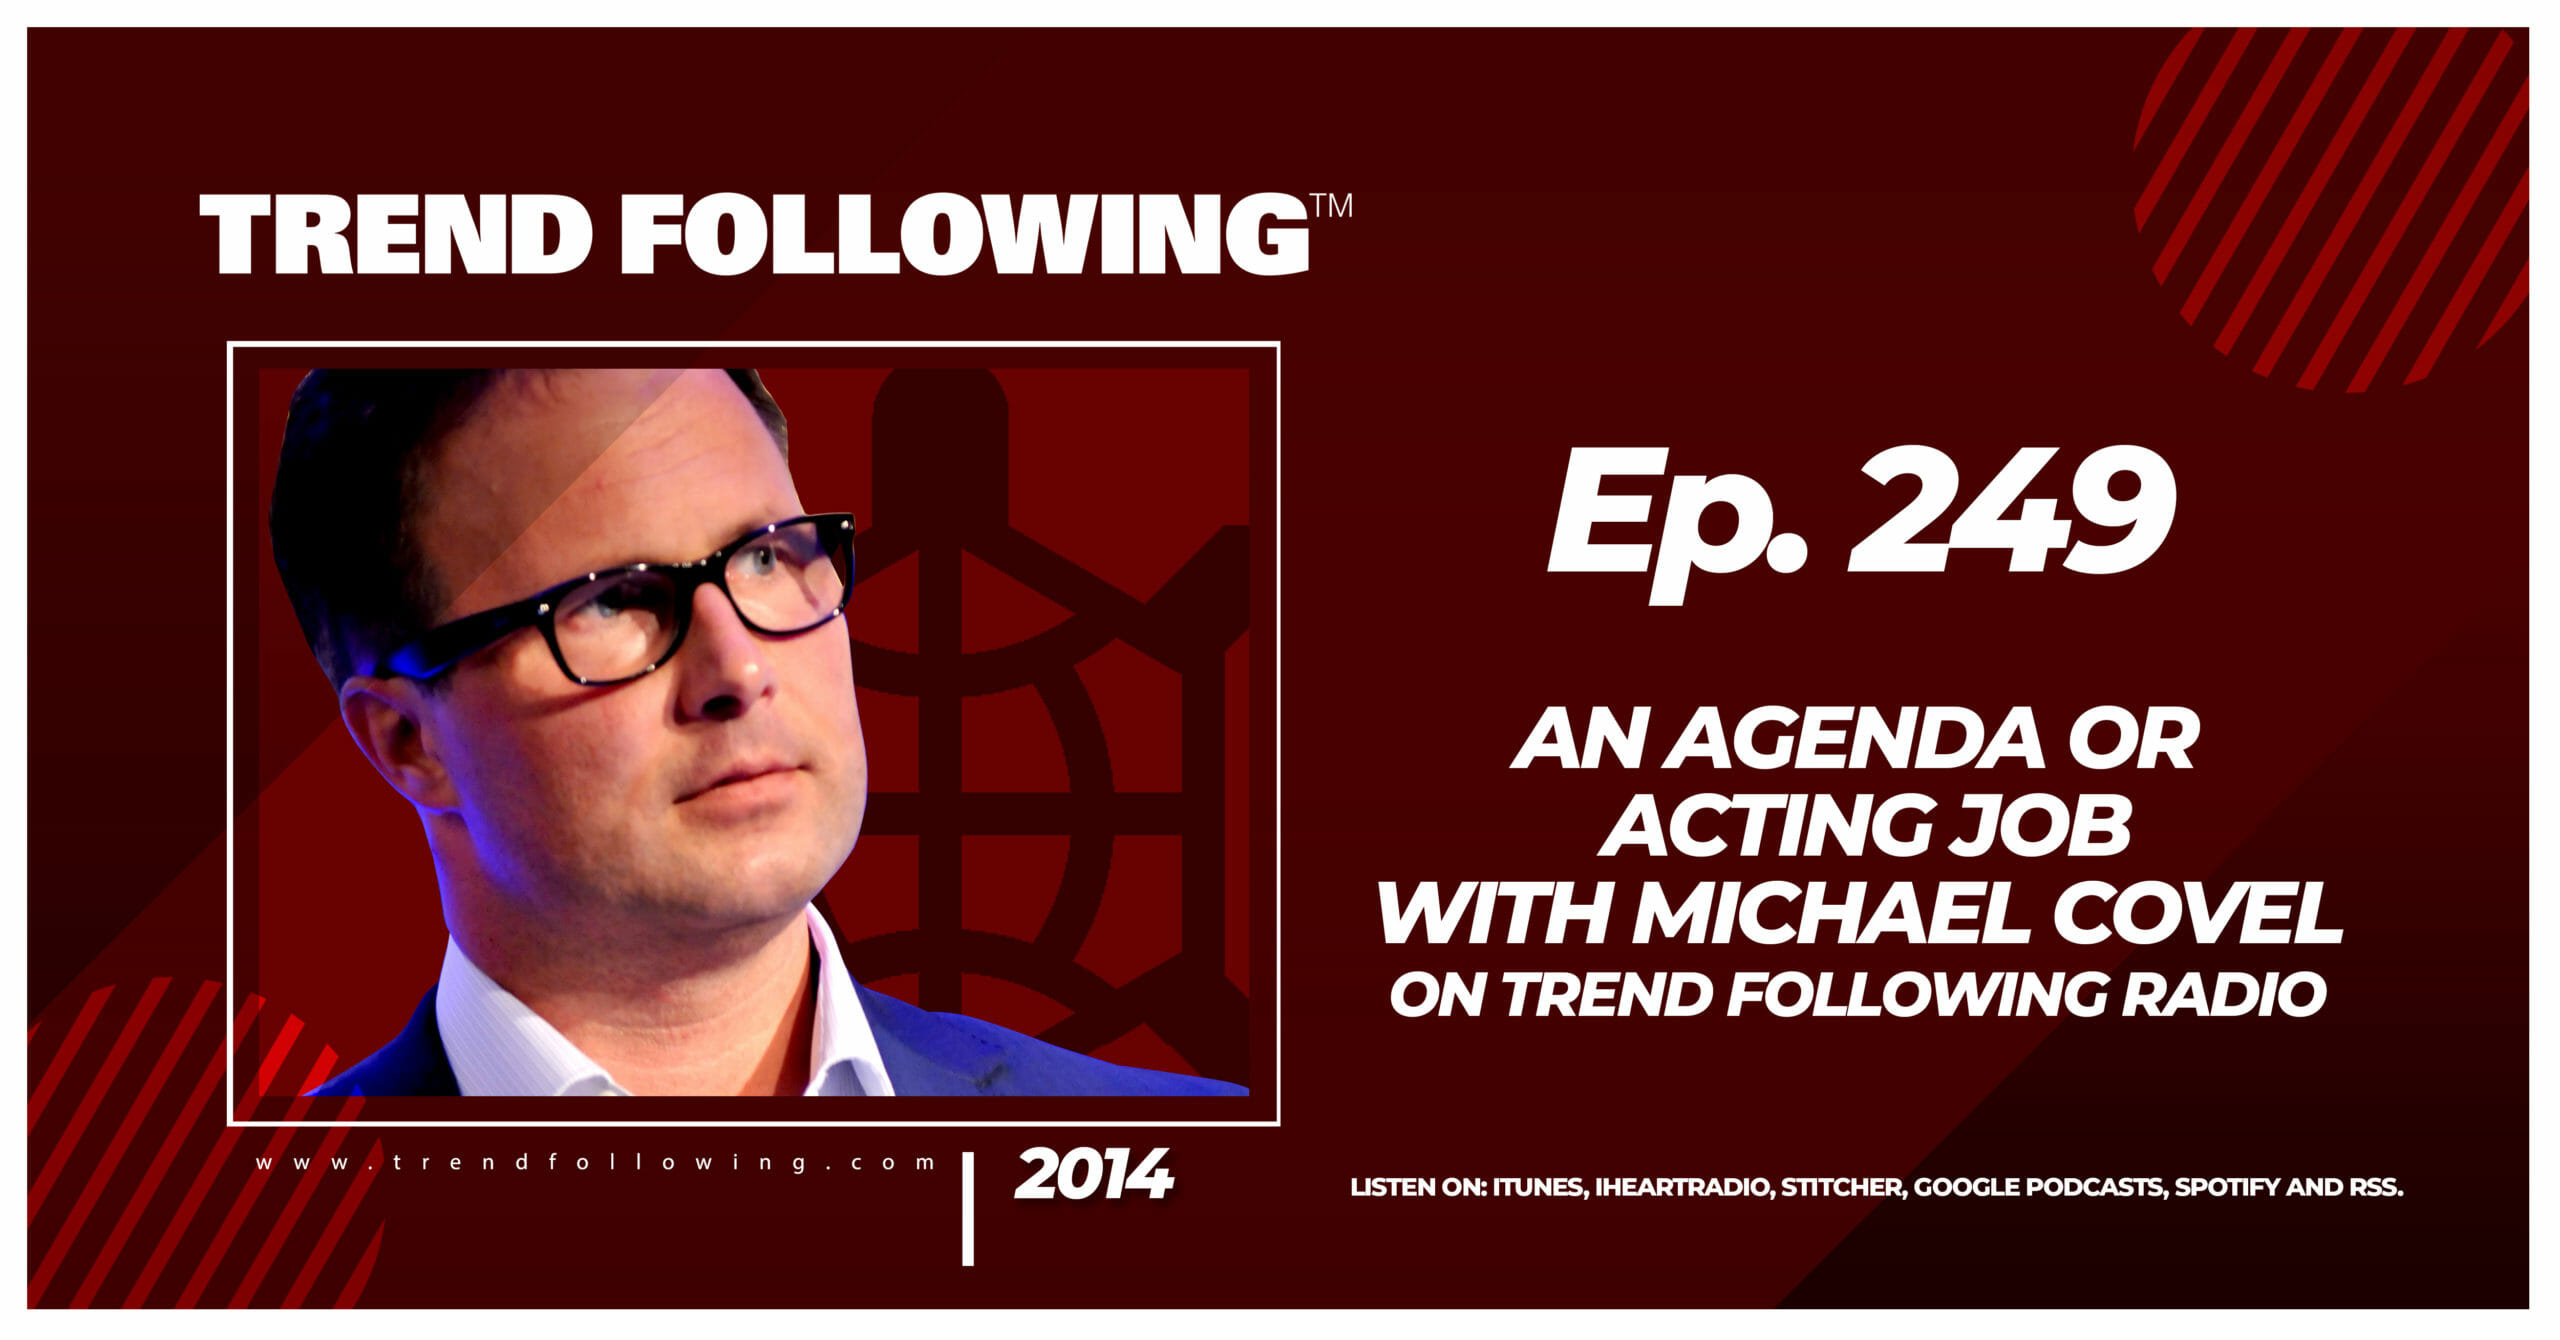 An Agenda or Acting Job with Michael Covel on Trend Following Radio